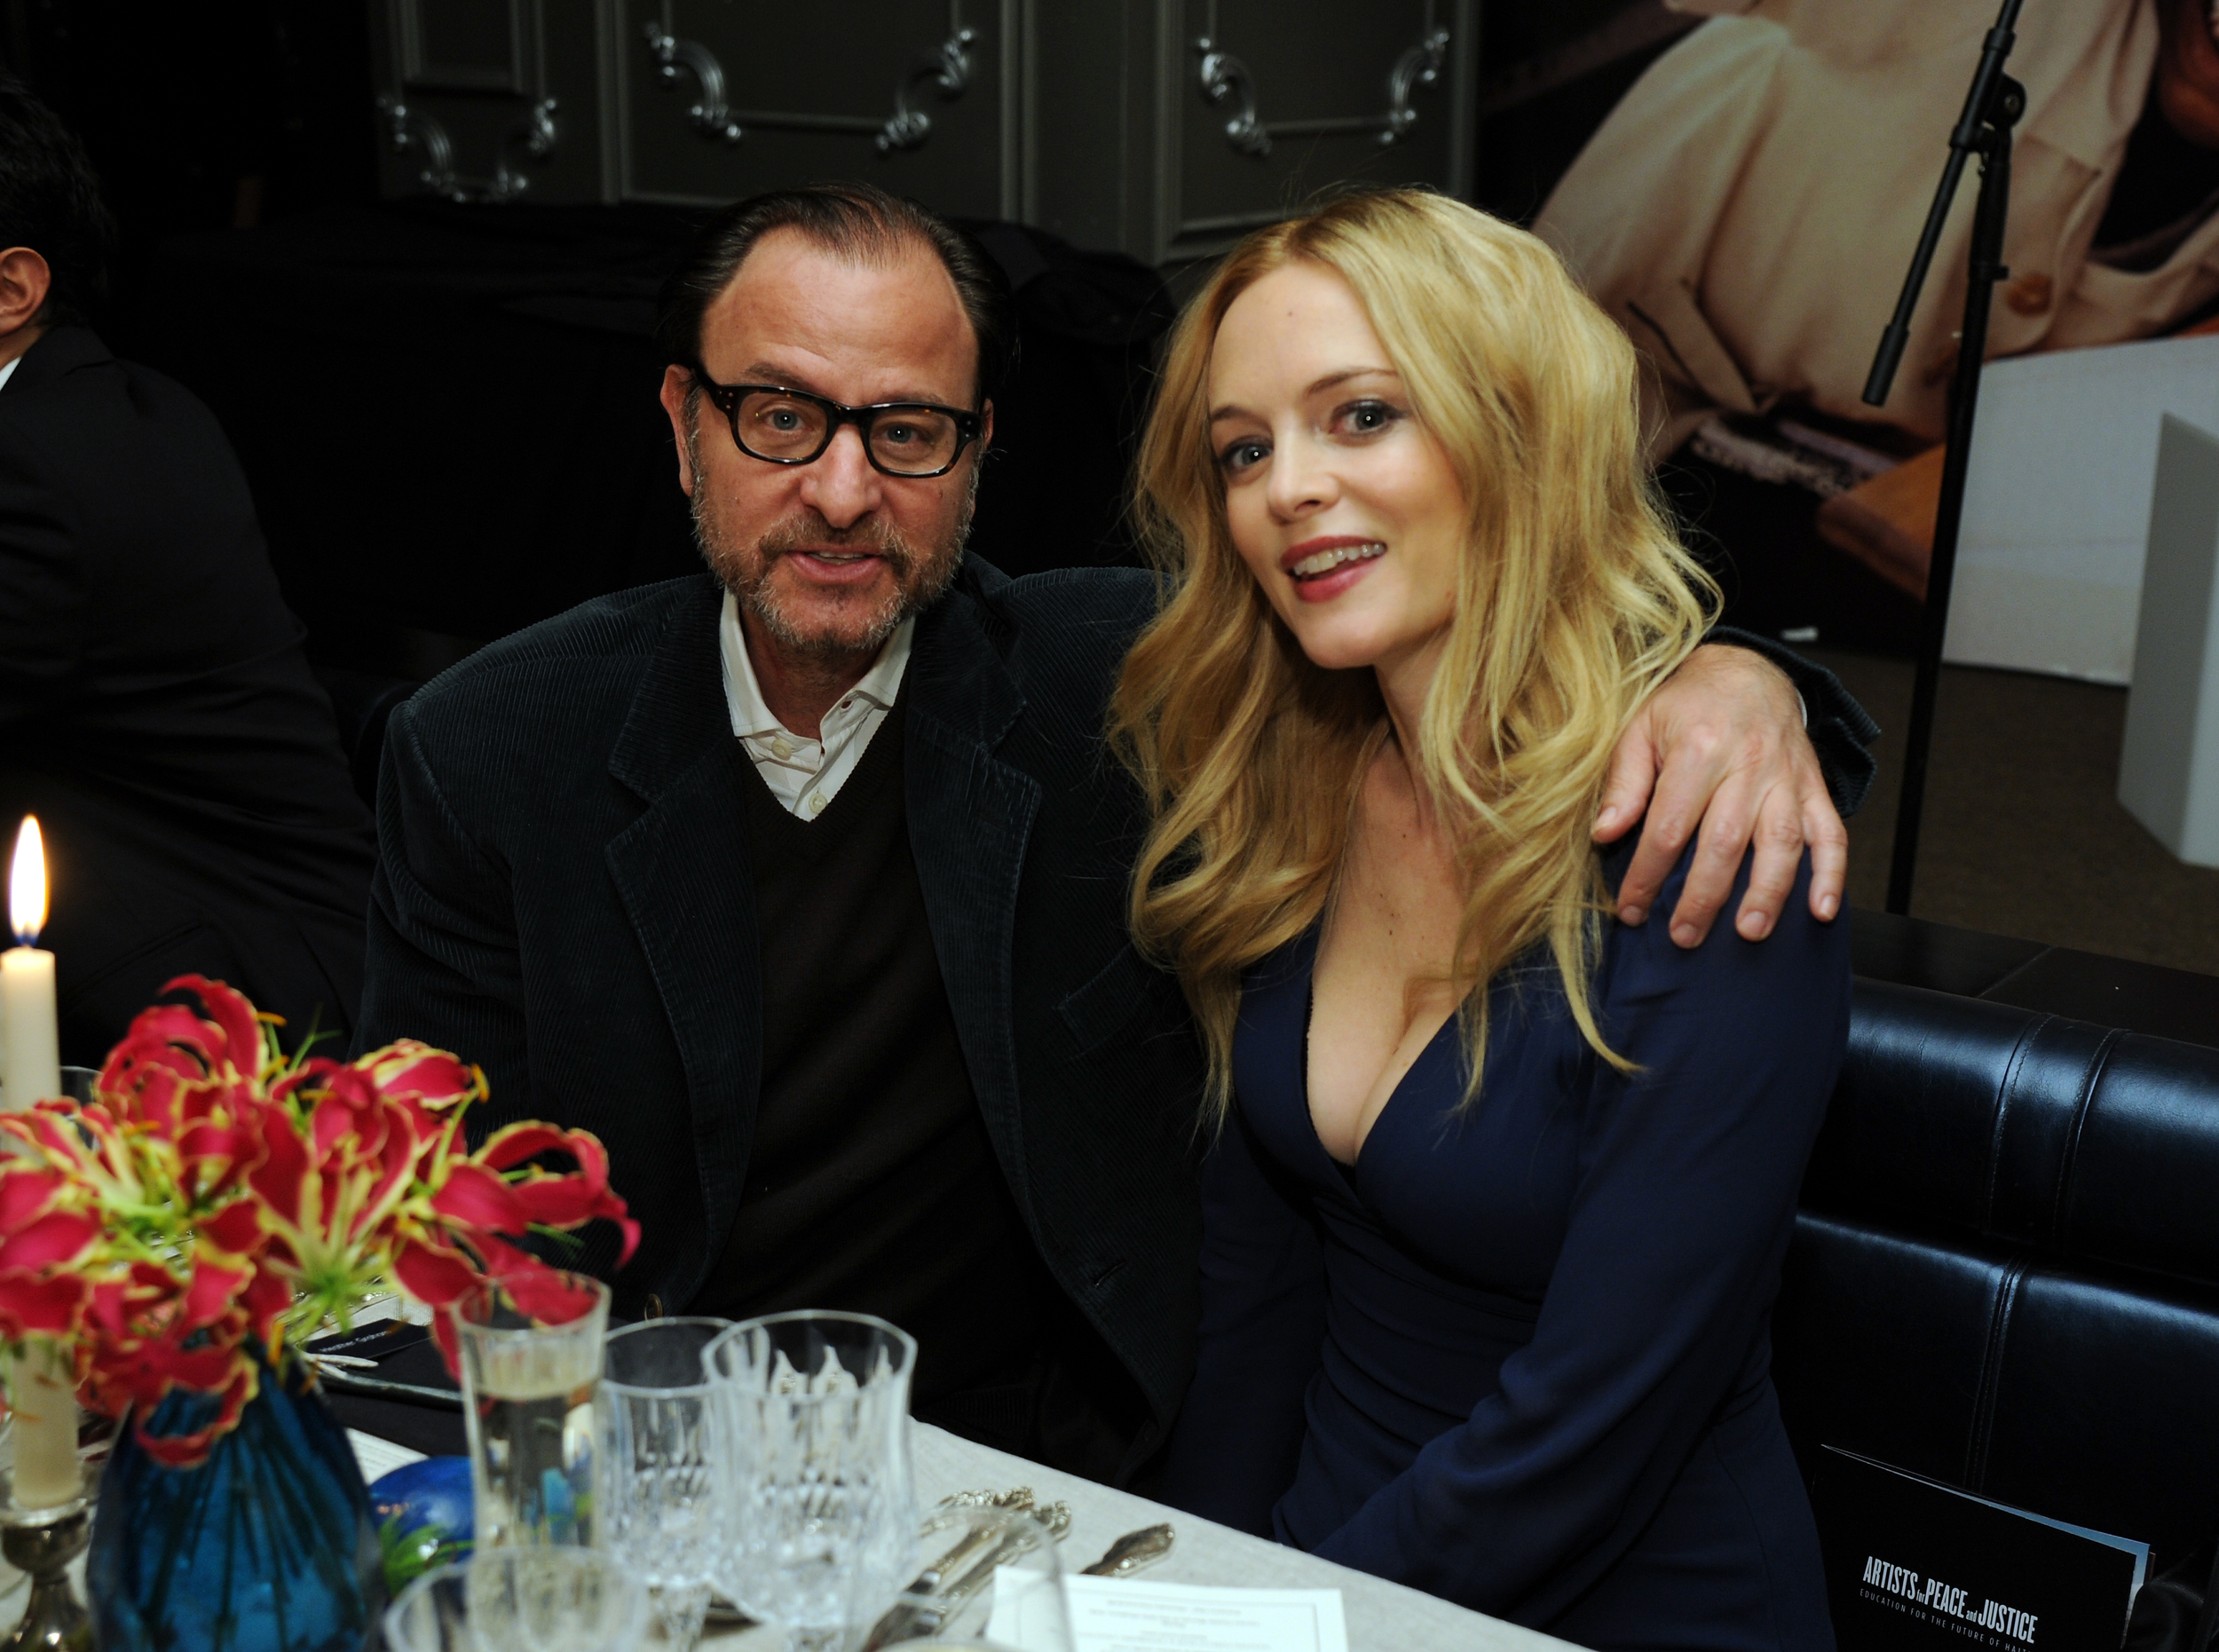 FISHER STEVENS AND HEATHER GRAHAM